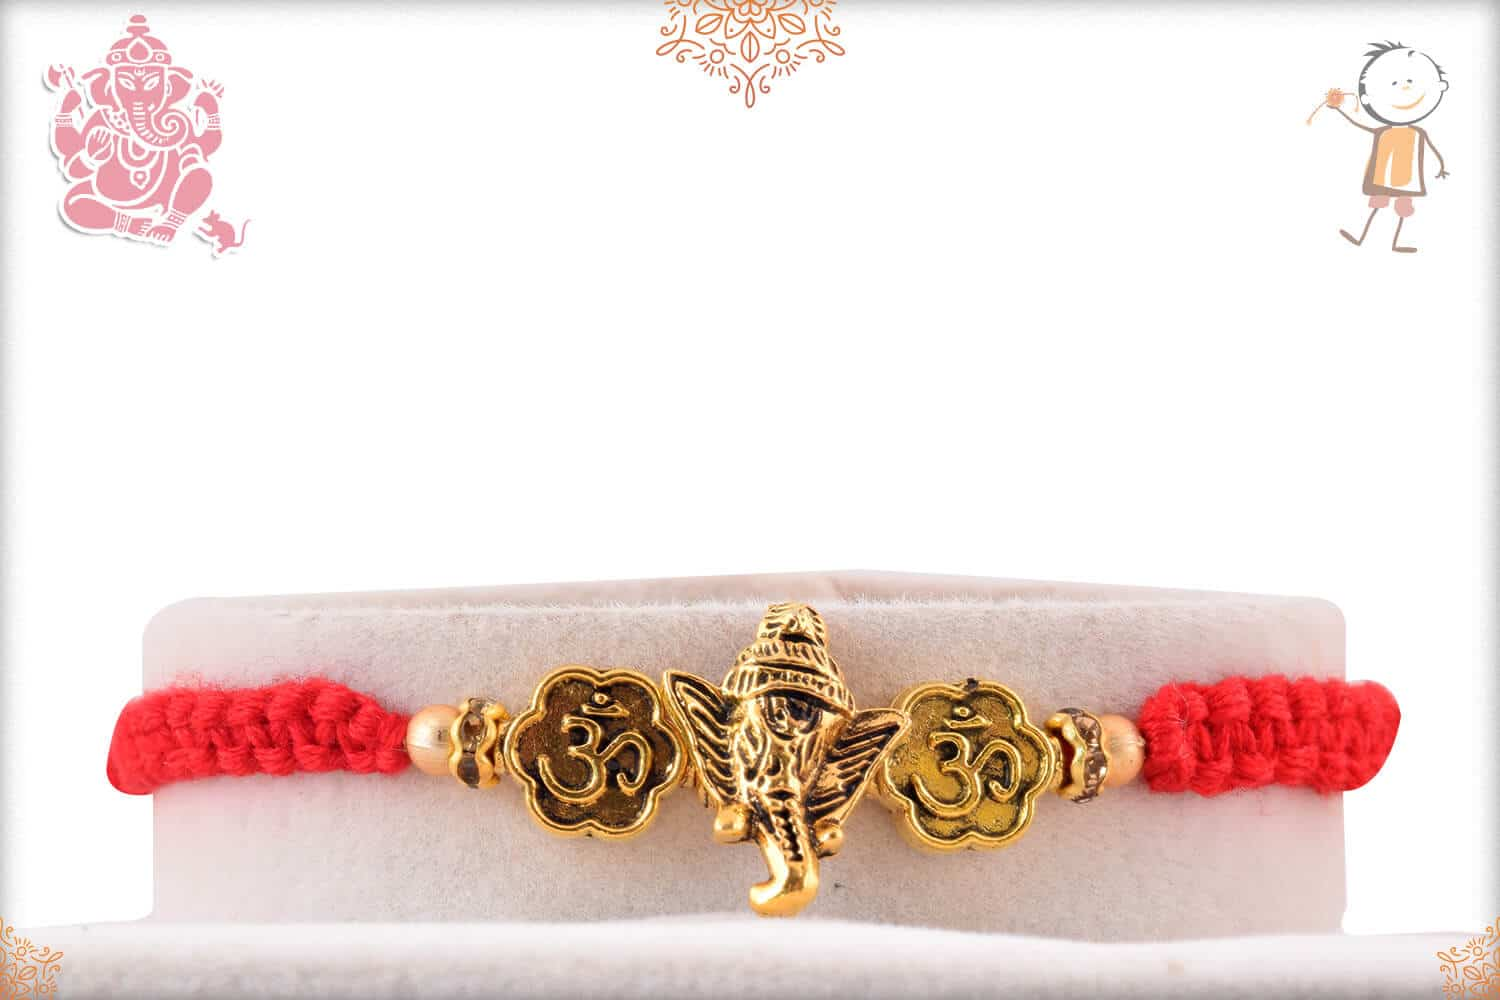 Antique Ganeshji OM Rakhi with Uniquely Knotted Red Thread 1